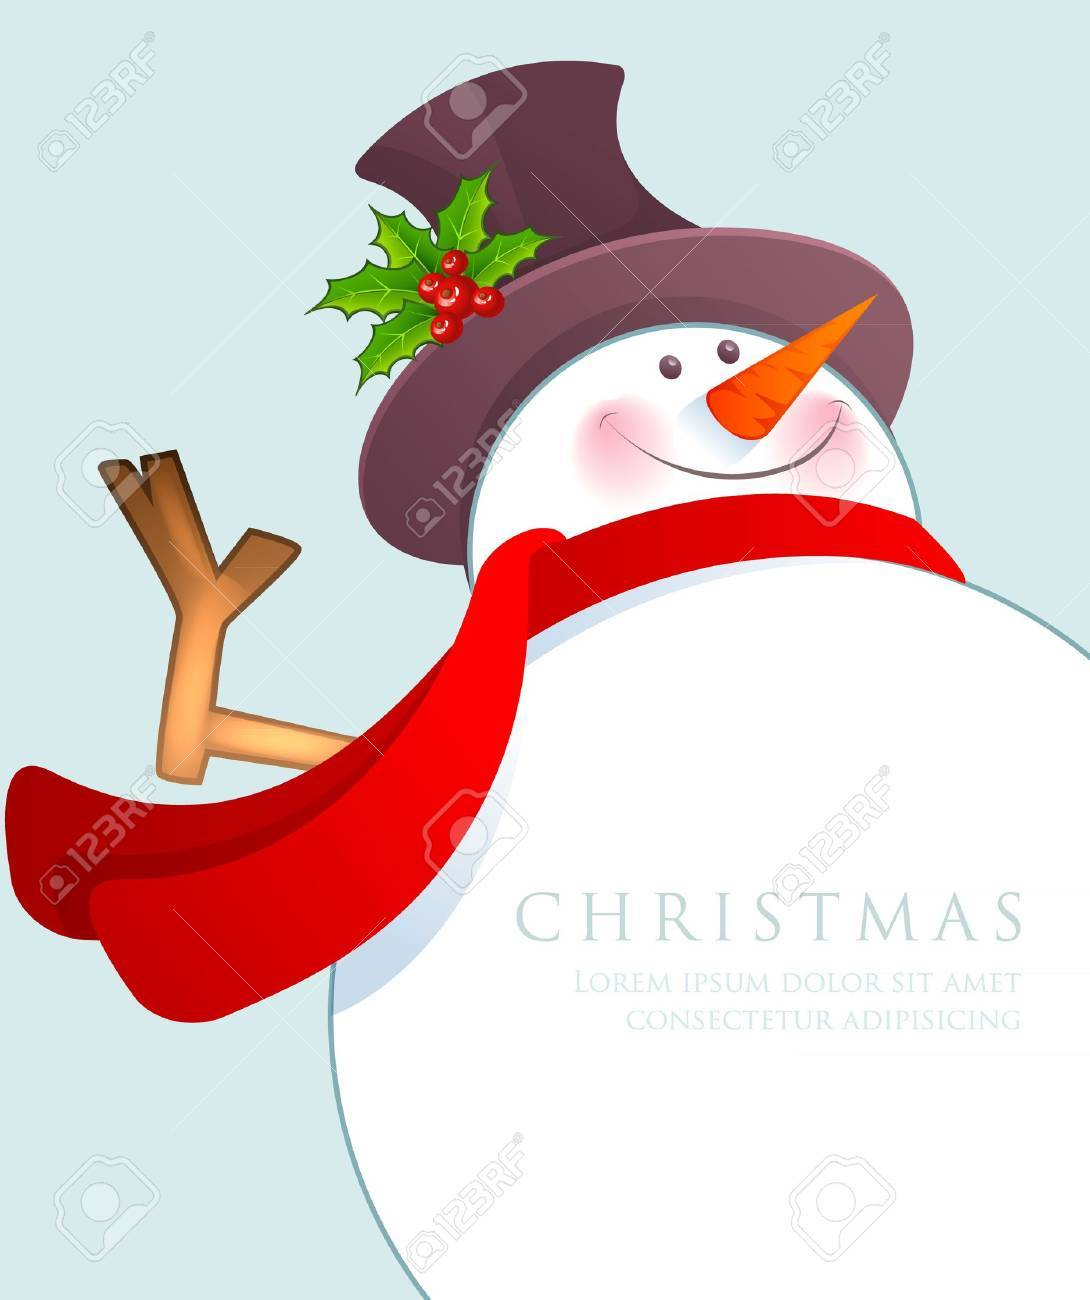 Vector illustration of Christmas Snowman Stock Vector - 15798522